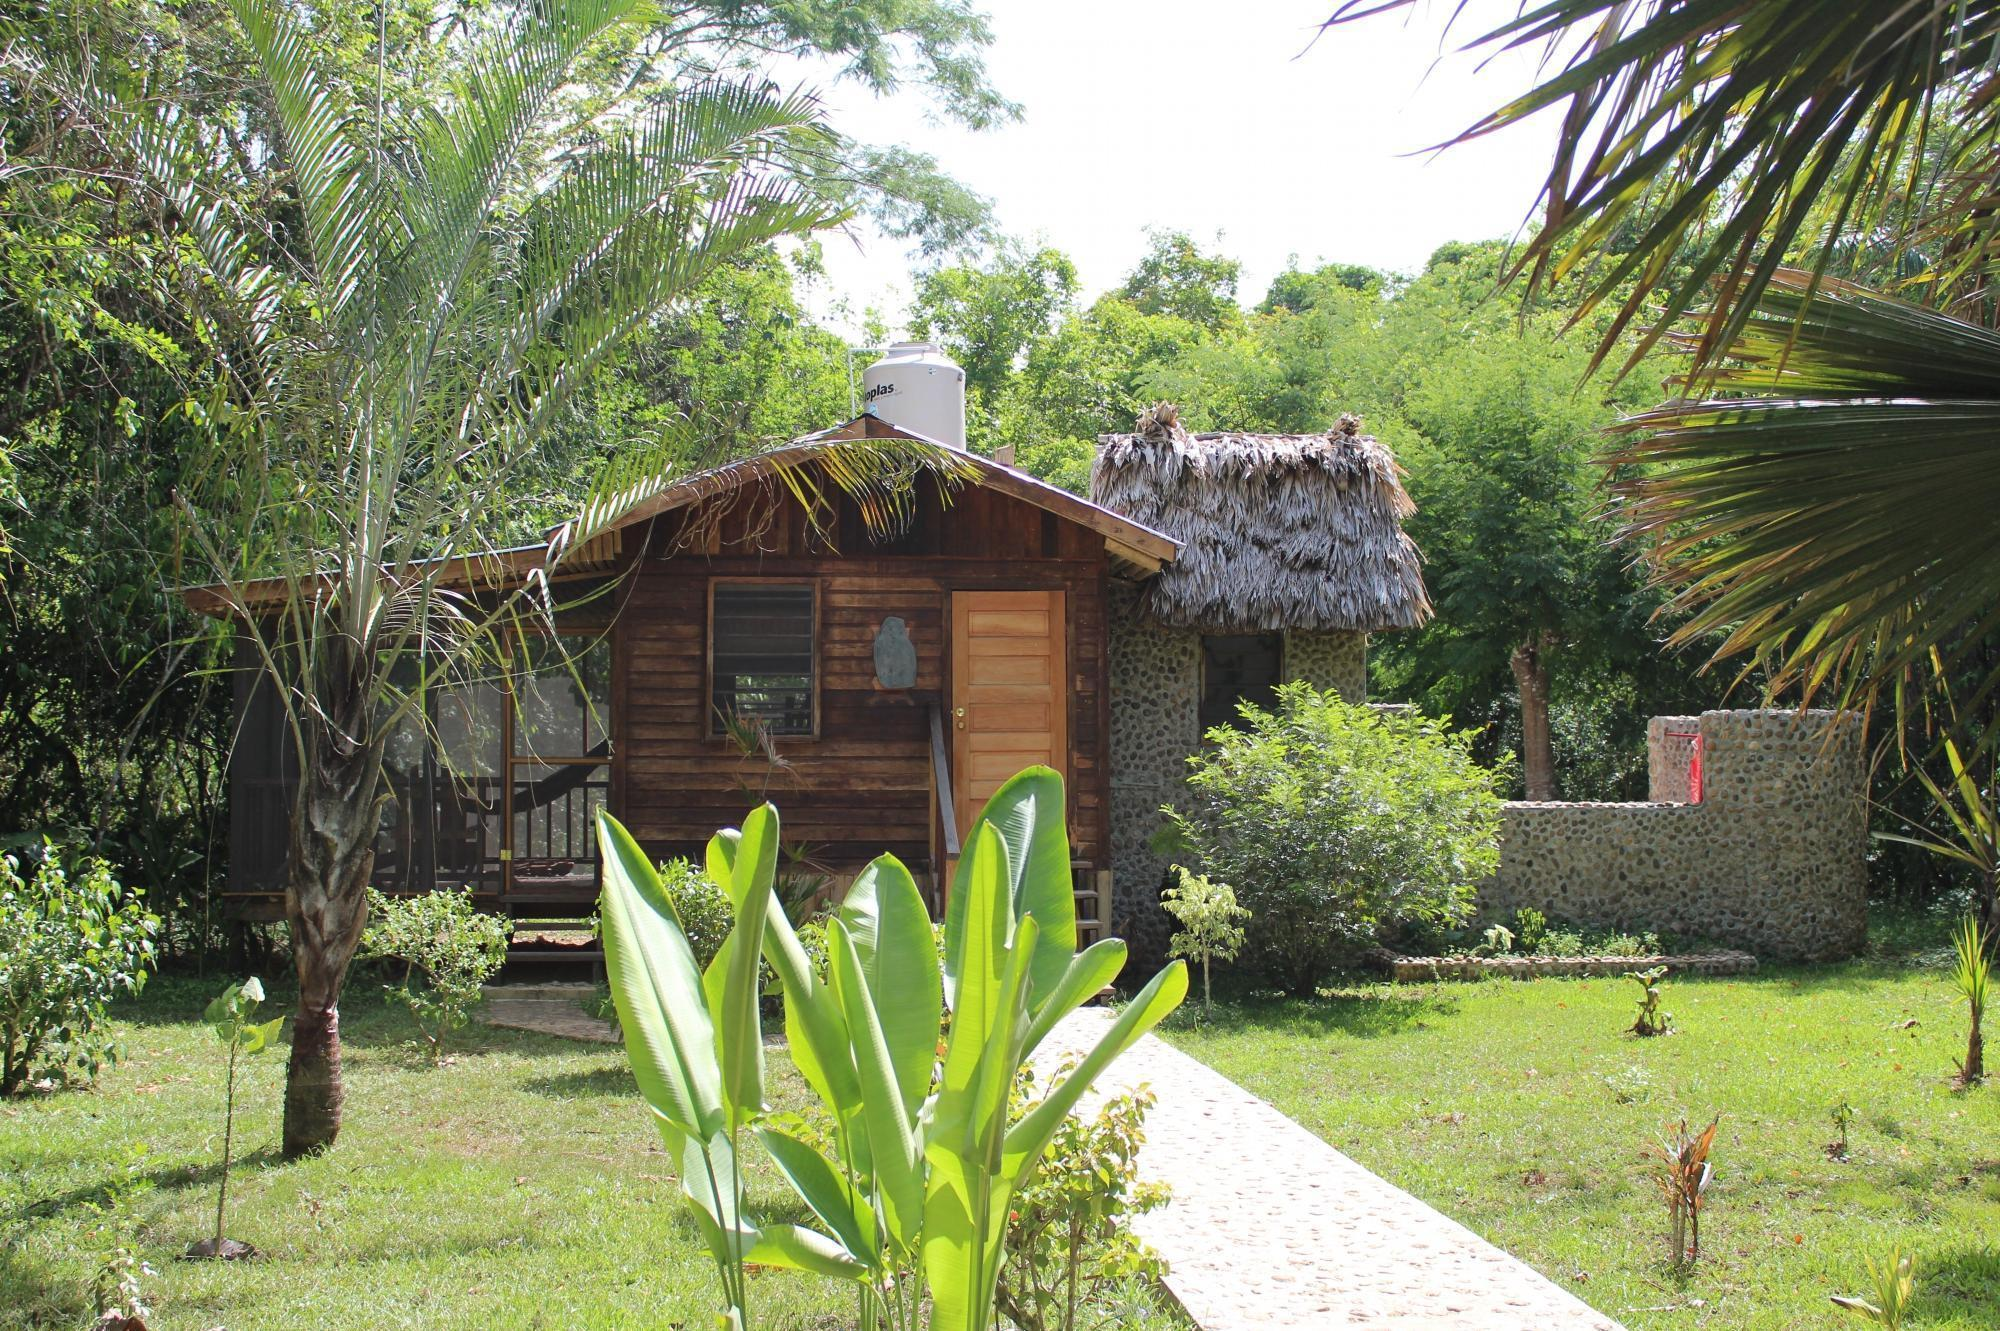 """The Macaw Bank Jungle Lodge track their energy use and train their staff annually on implementing the hotel's green practices. Guests can also learn about the green credentials of the property during their stay. Find out more about their eco practices on their <a href=""""http://www.macawbankjunglelodge.com/"""" target=""""_blank"""">website</a>."""